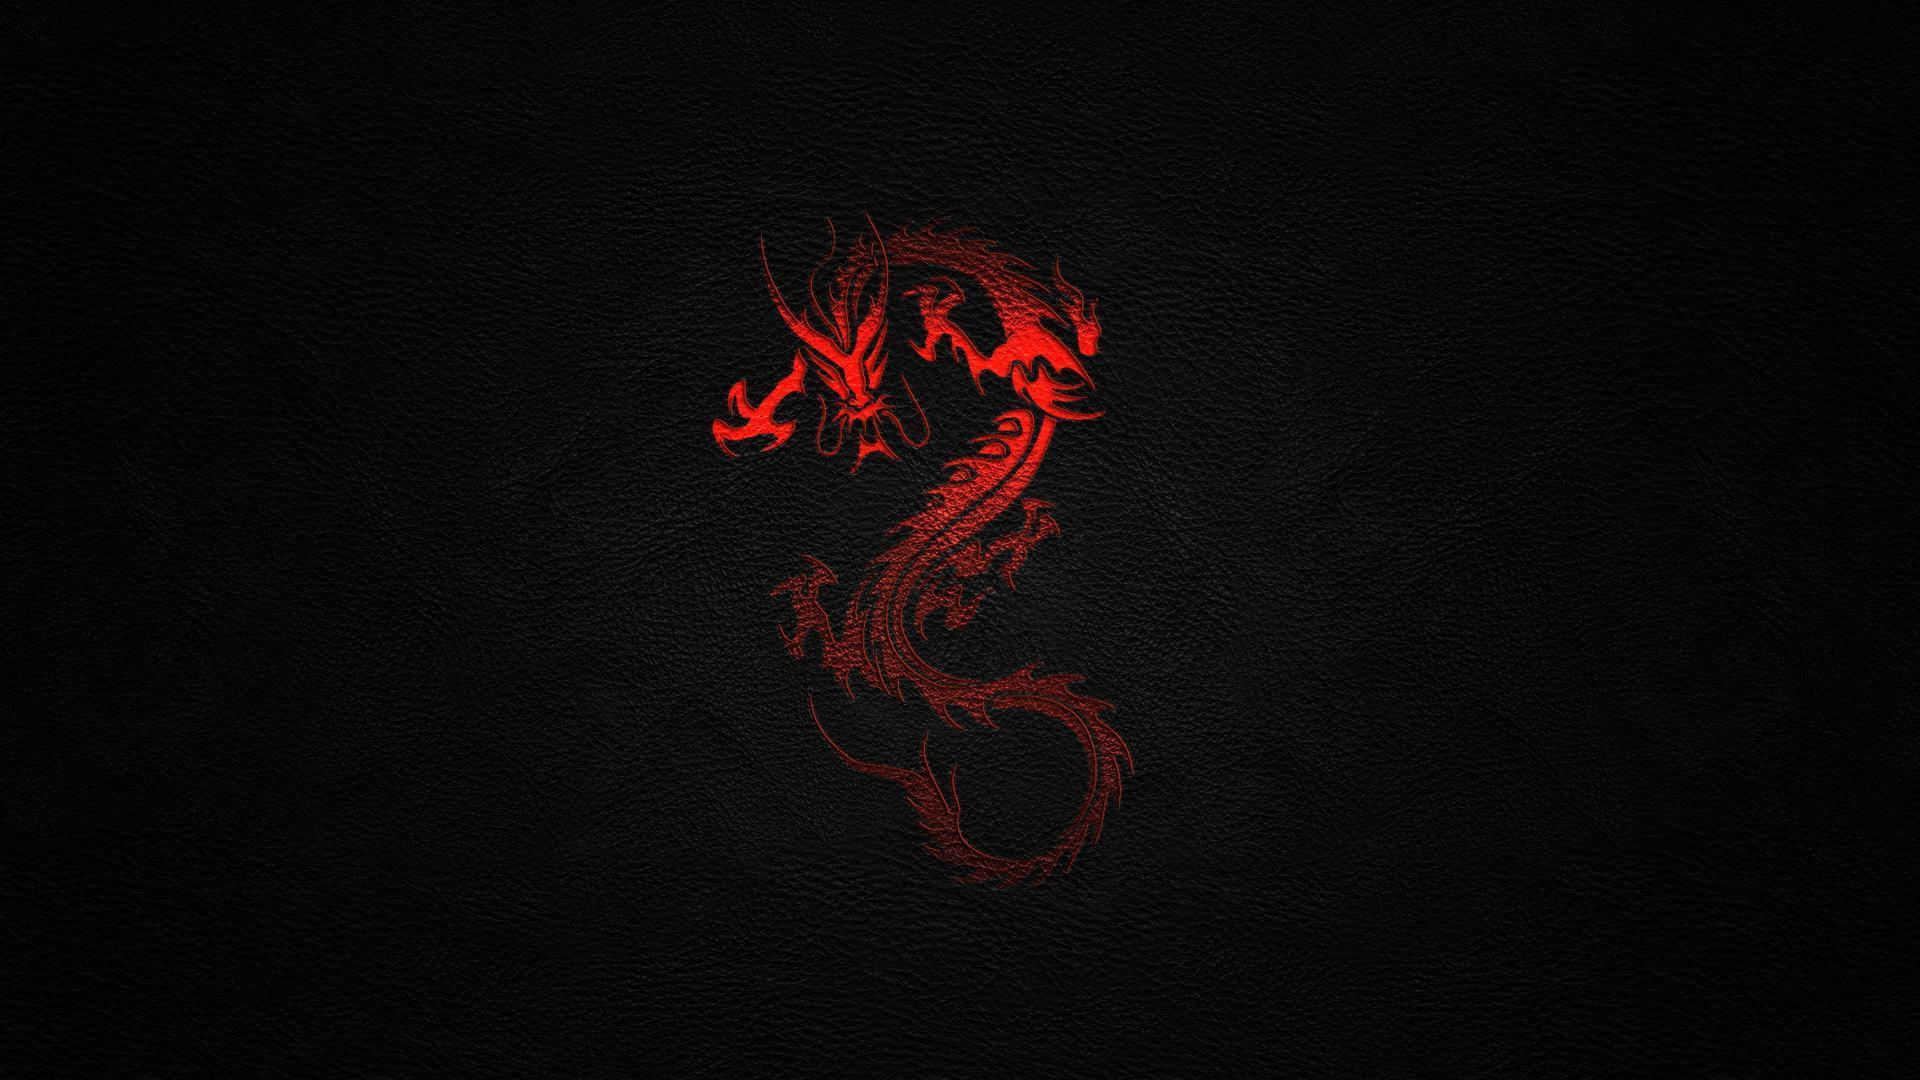 Red And Black Dragon Wallpapers Top Free Red And Black Dragon